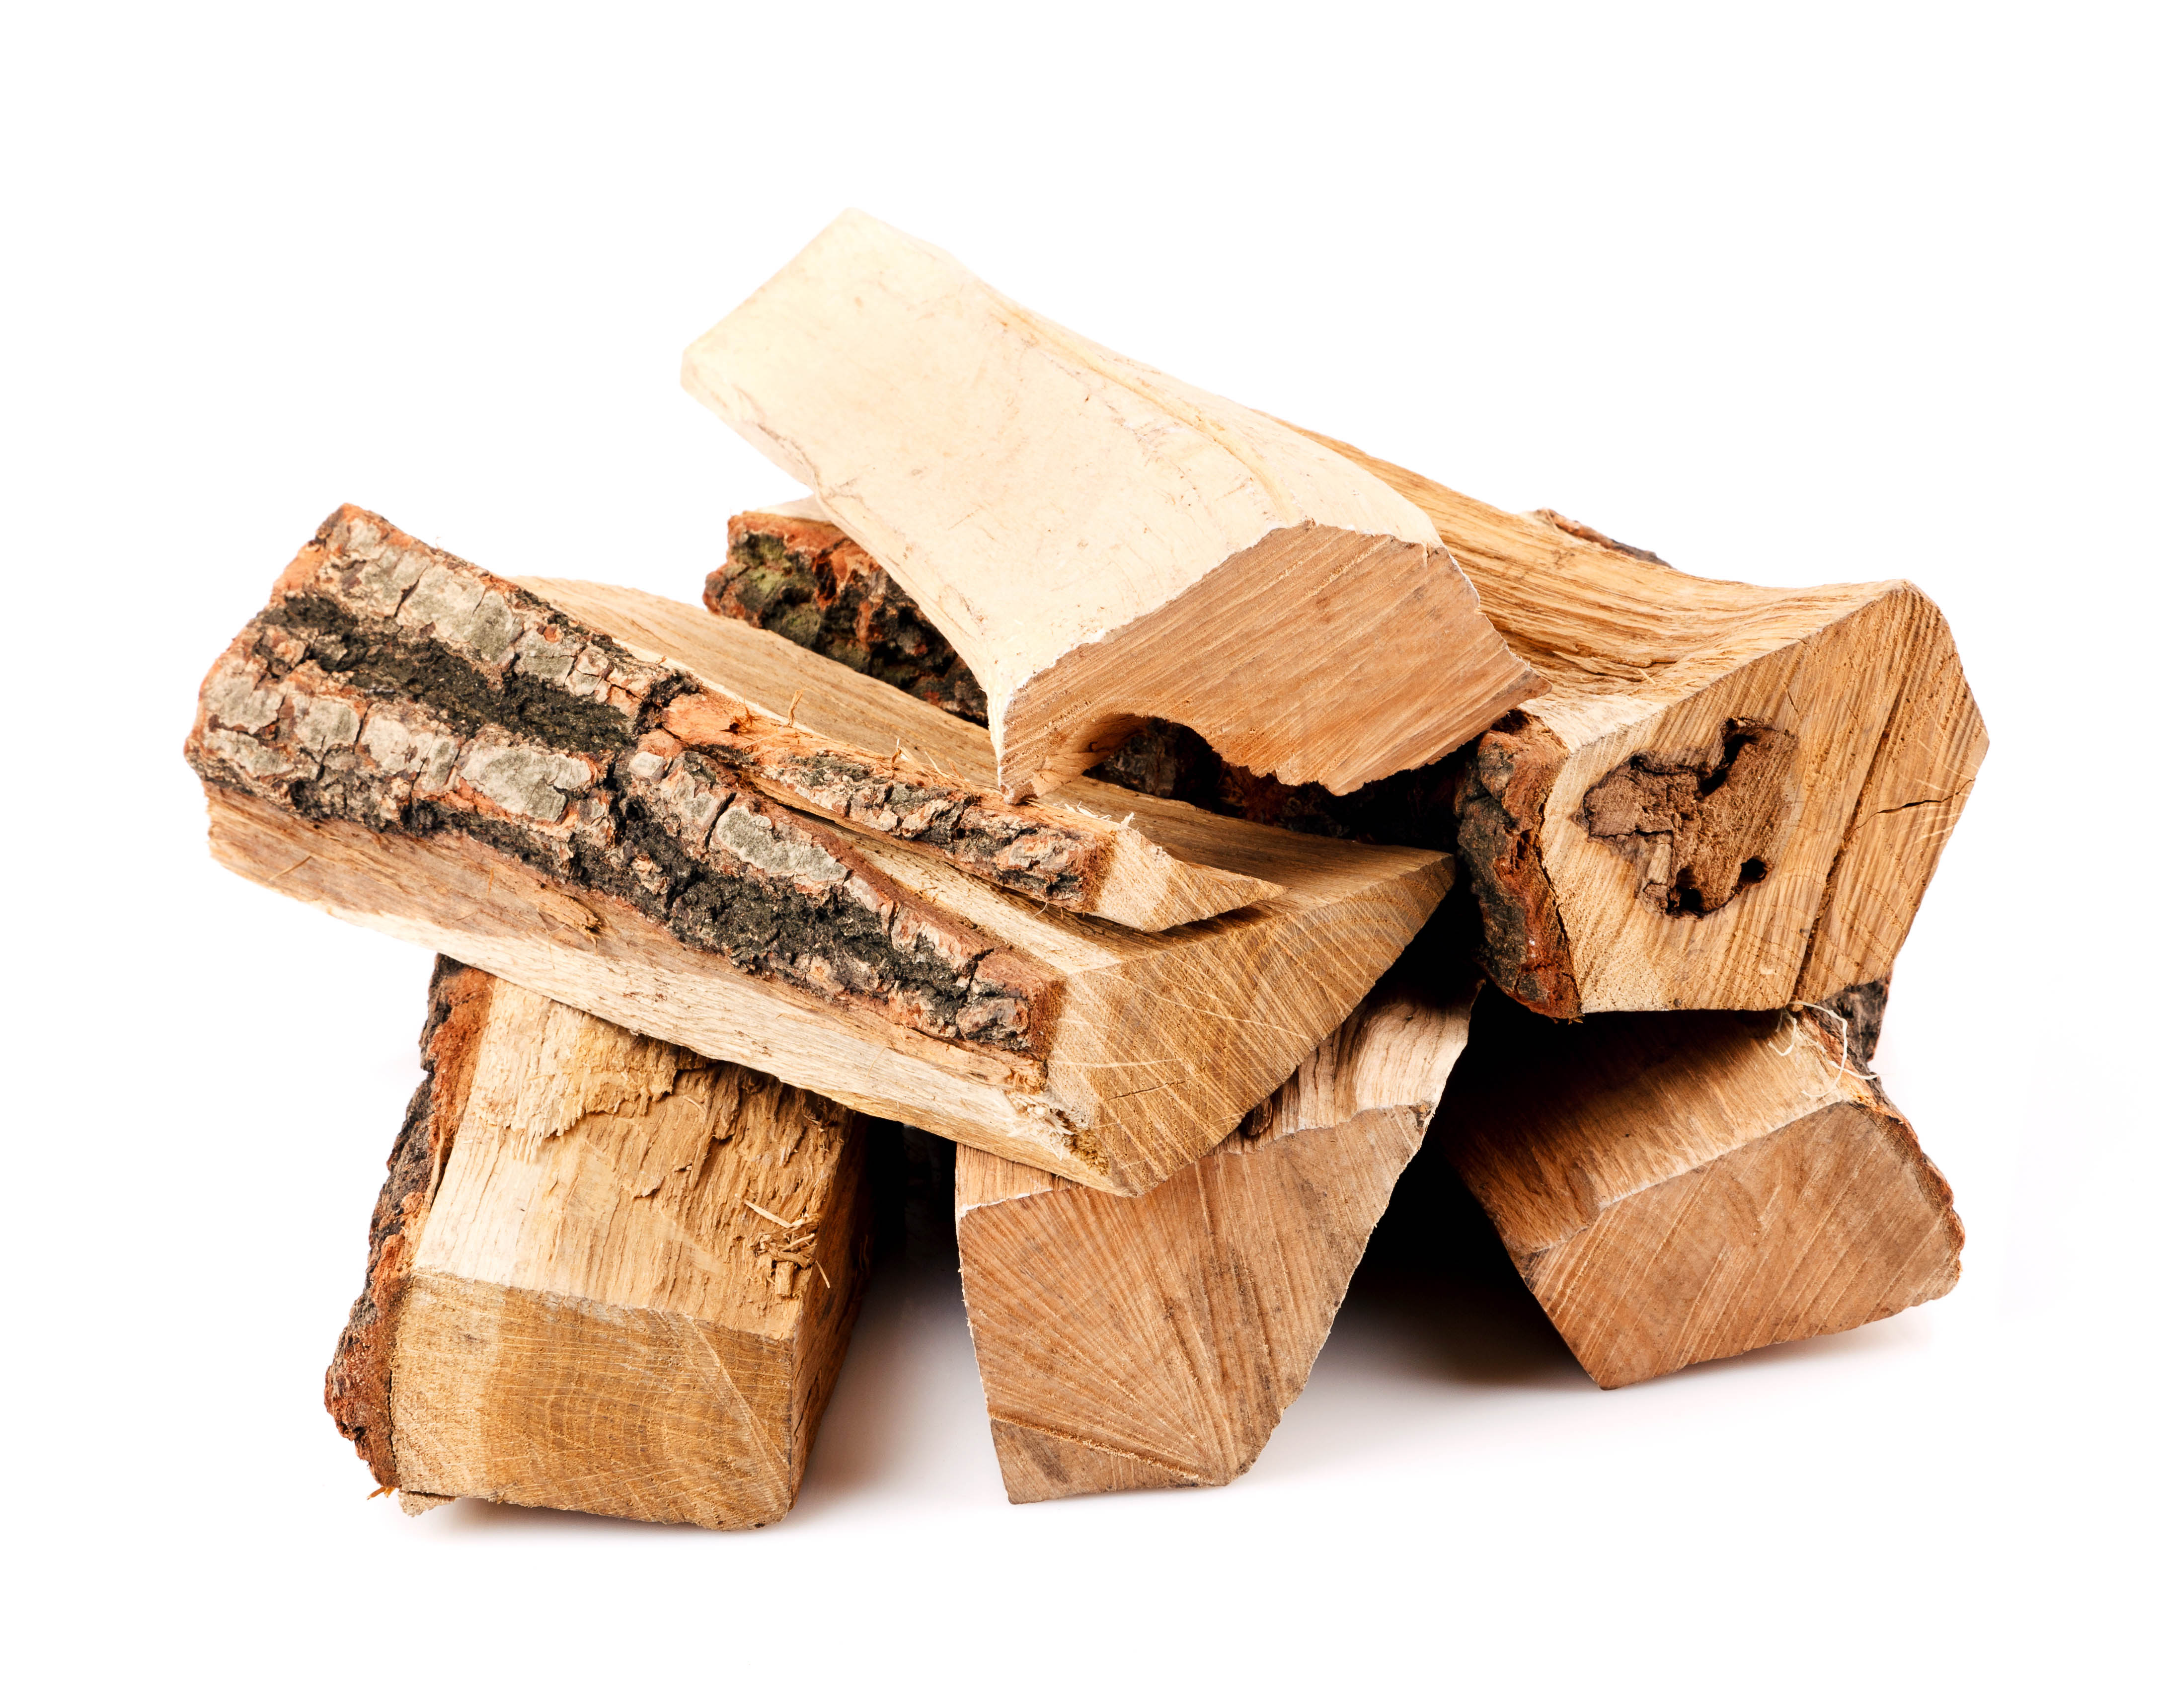 Different Wood Types Have Their Own Burning Wood - Burning Wood PNG